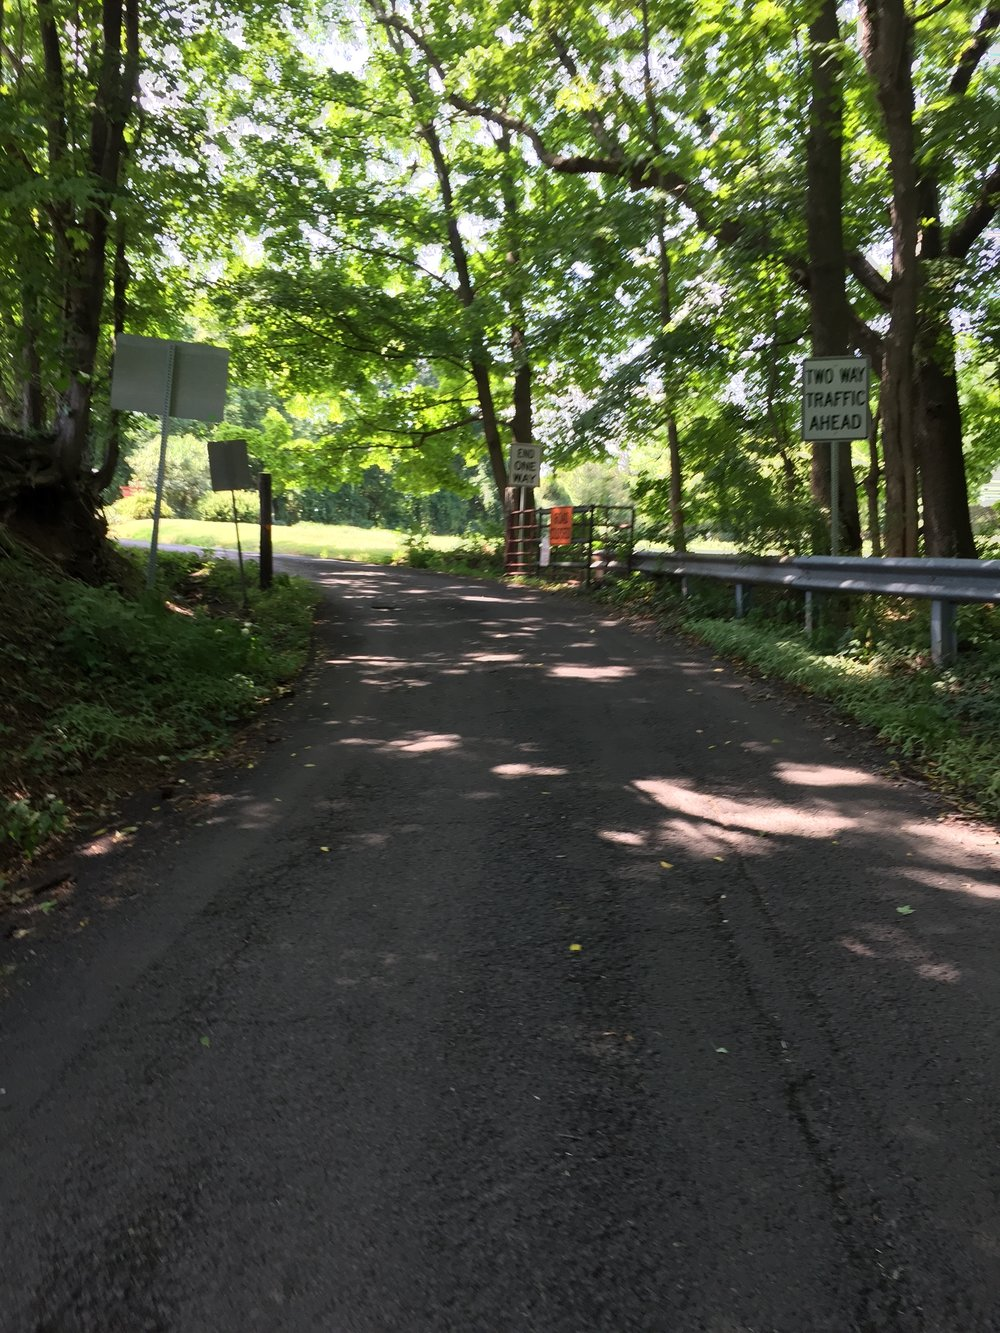 The sweet summit complete with its gate and resumption of two way traffic.